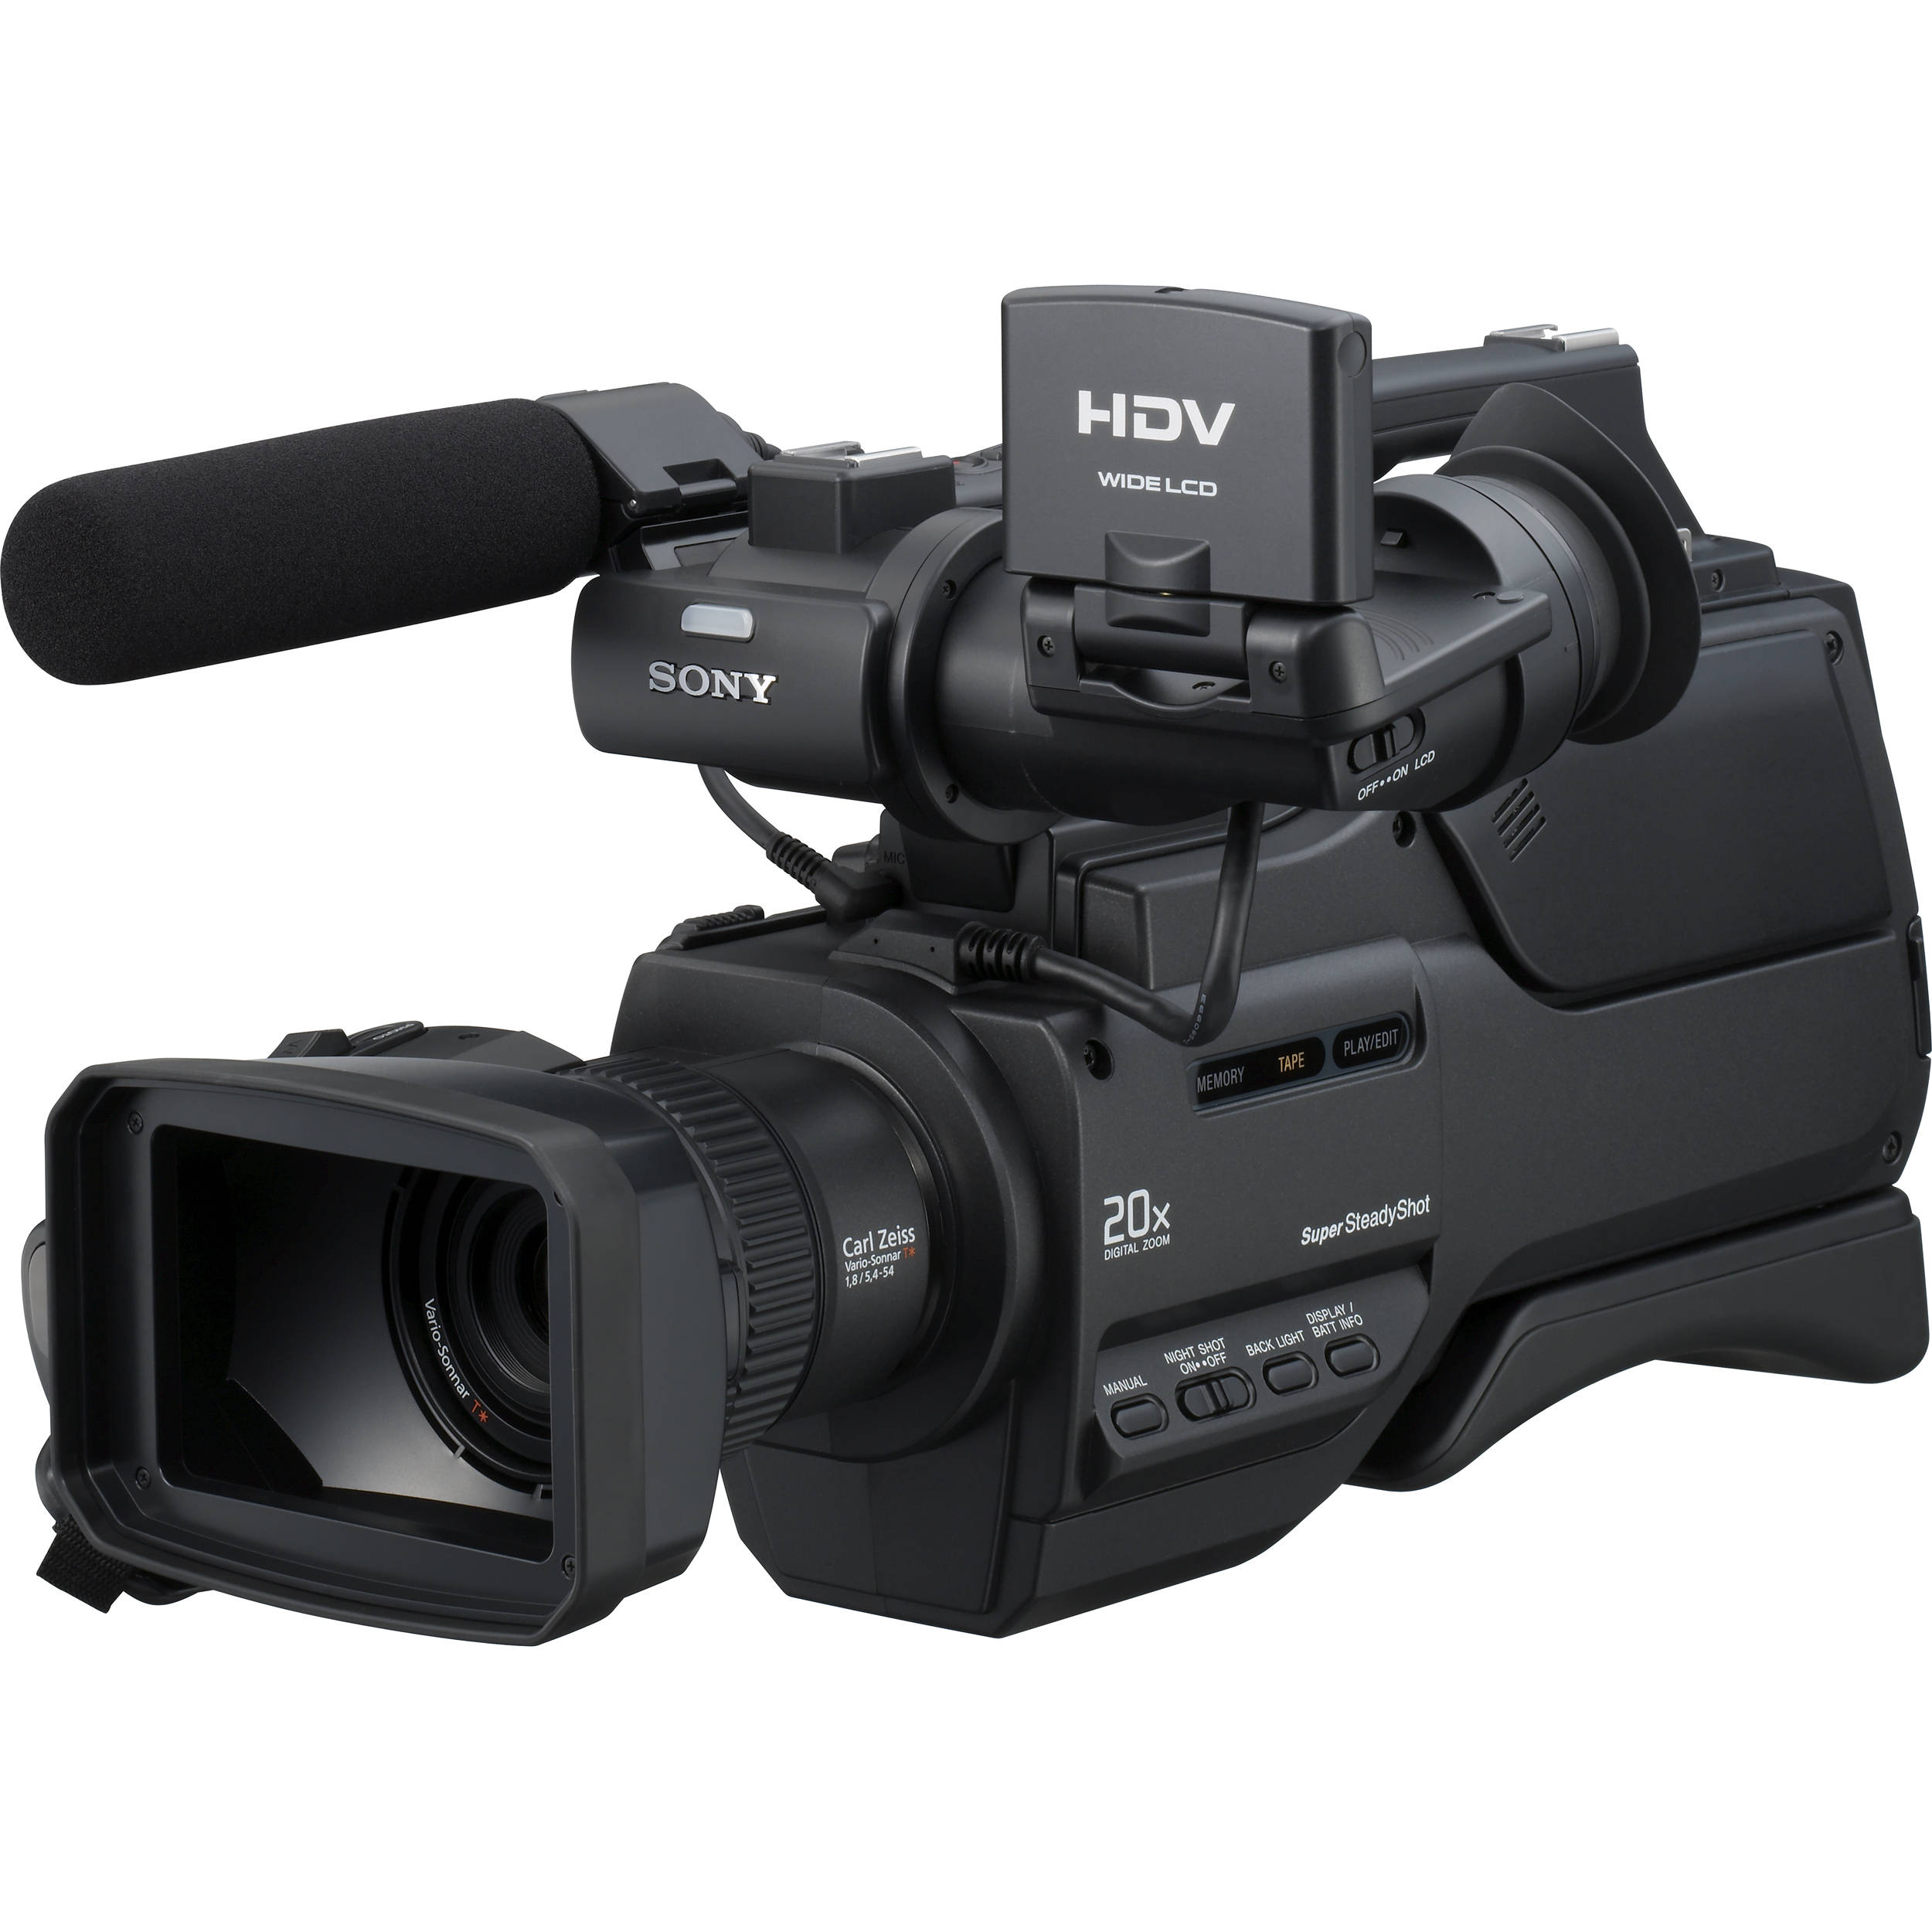 sony hvr hd1000u digital high definition hdv camcorder. Black Bedroom Furniture Sets. Home Design Ideas